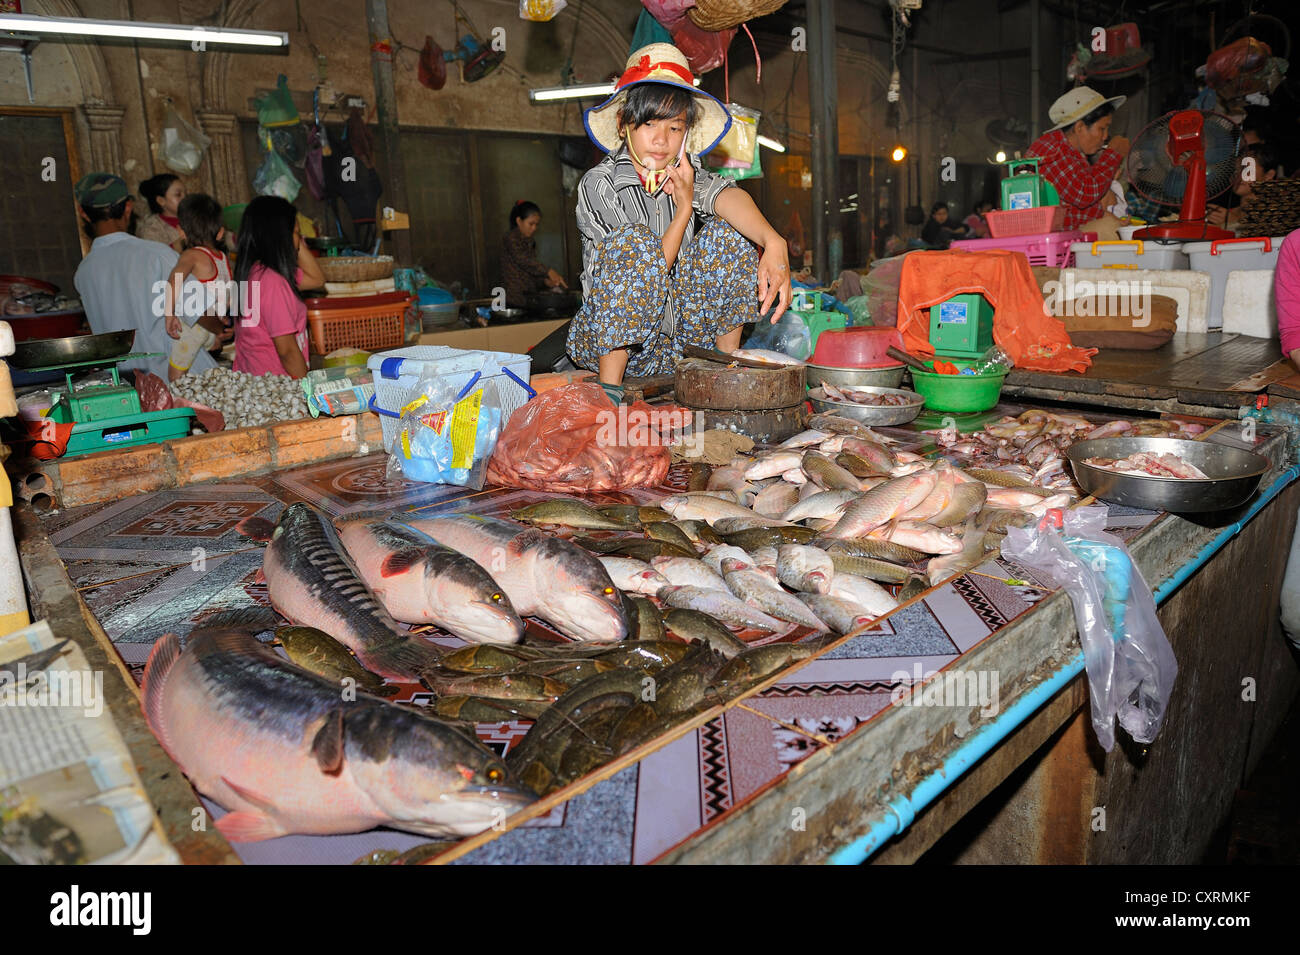 Fishmonger sitting among her fish, Old Market in Siem Reap, Cambodia, Southeast Asia, Asia - Stock Image